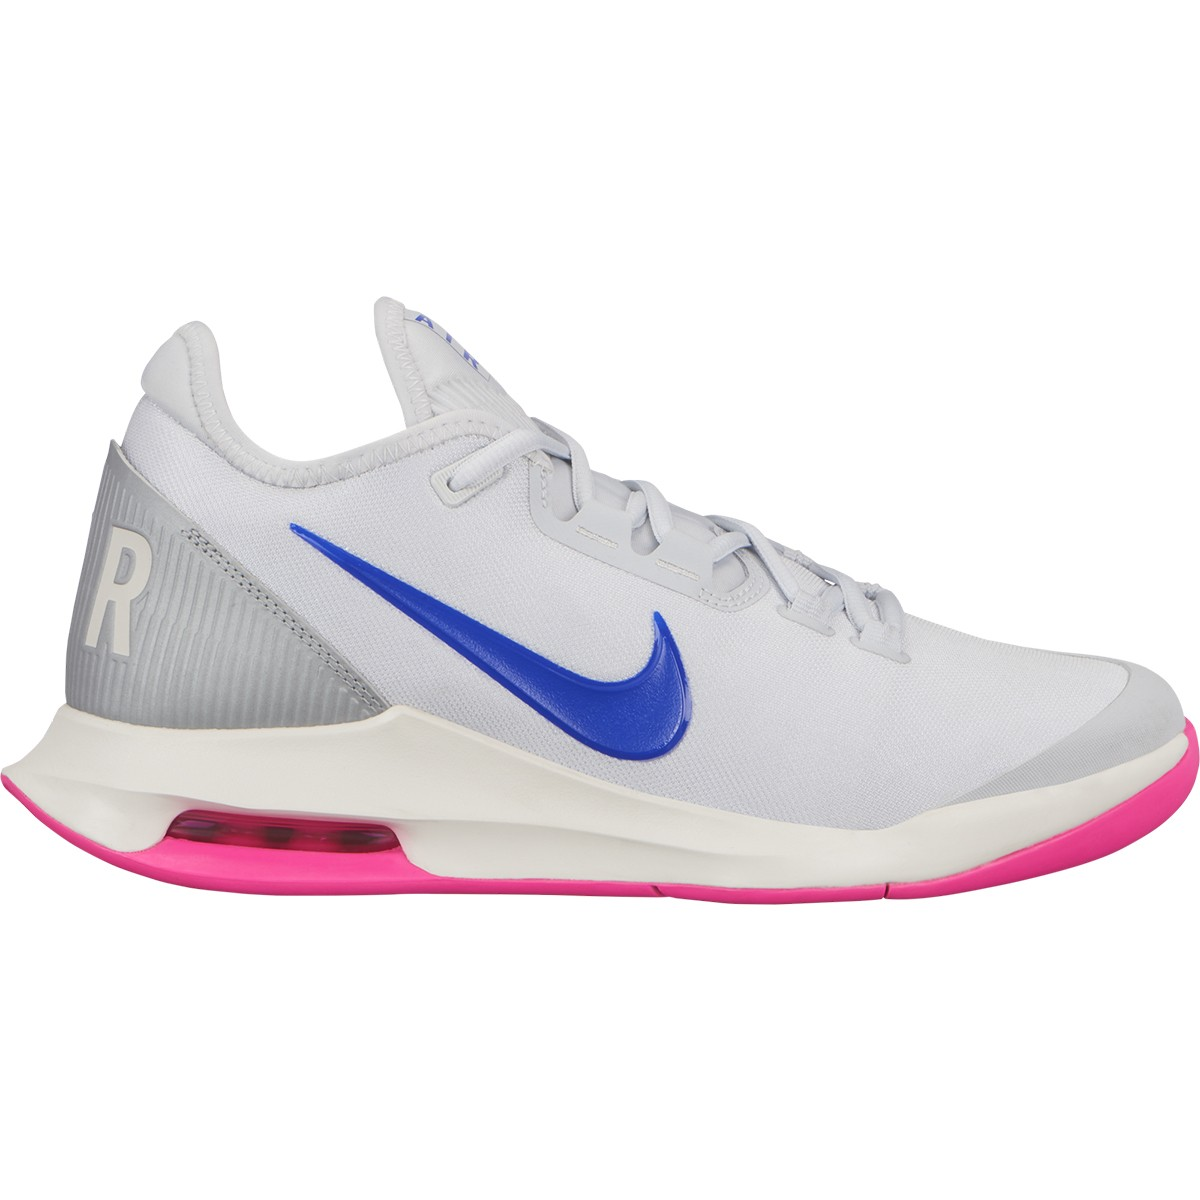 Femme Nike Wildcard Max Chaussures Toutes Air Surfaces l1cJK3TF